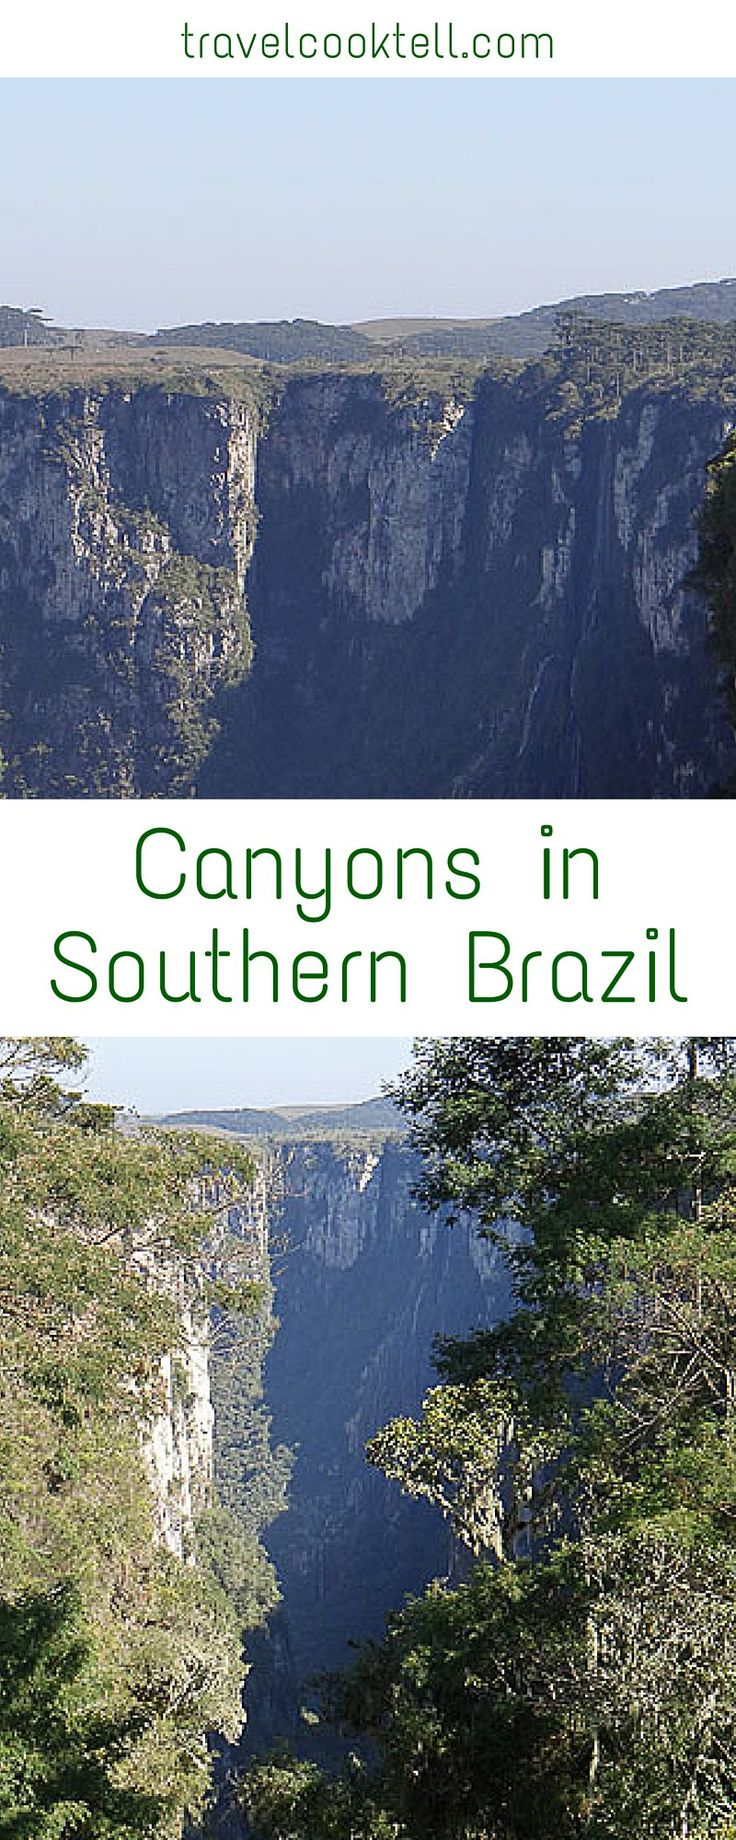 79 best images about my photography on pinterest santiago cook - Canyons In Southern Brazil Travel Cook Tell